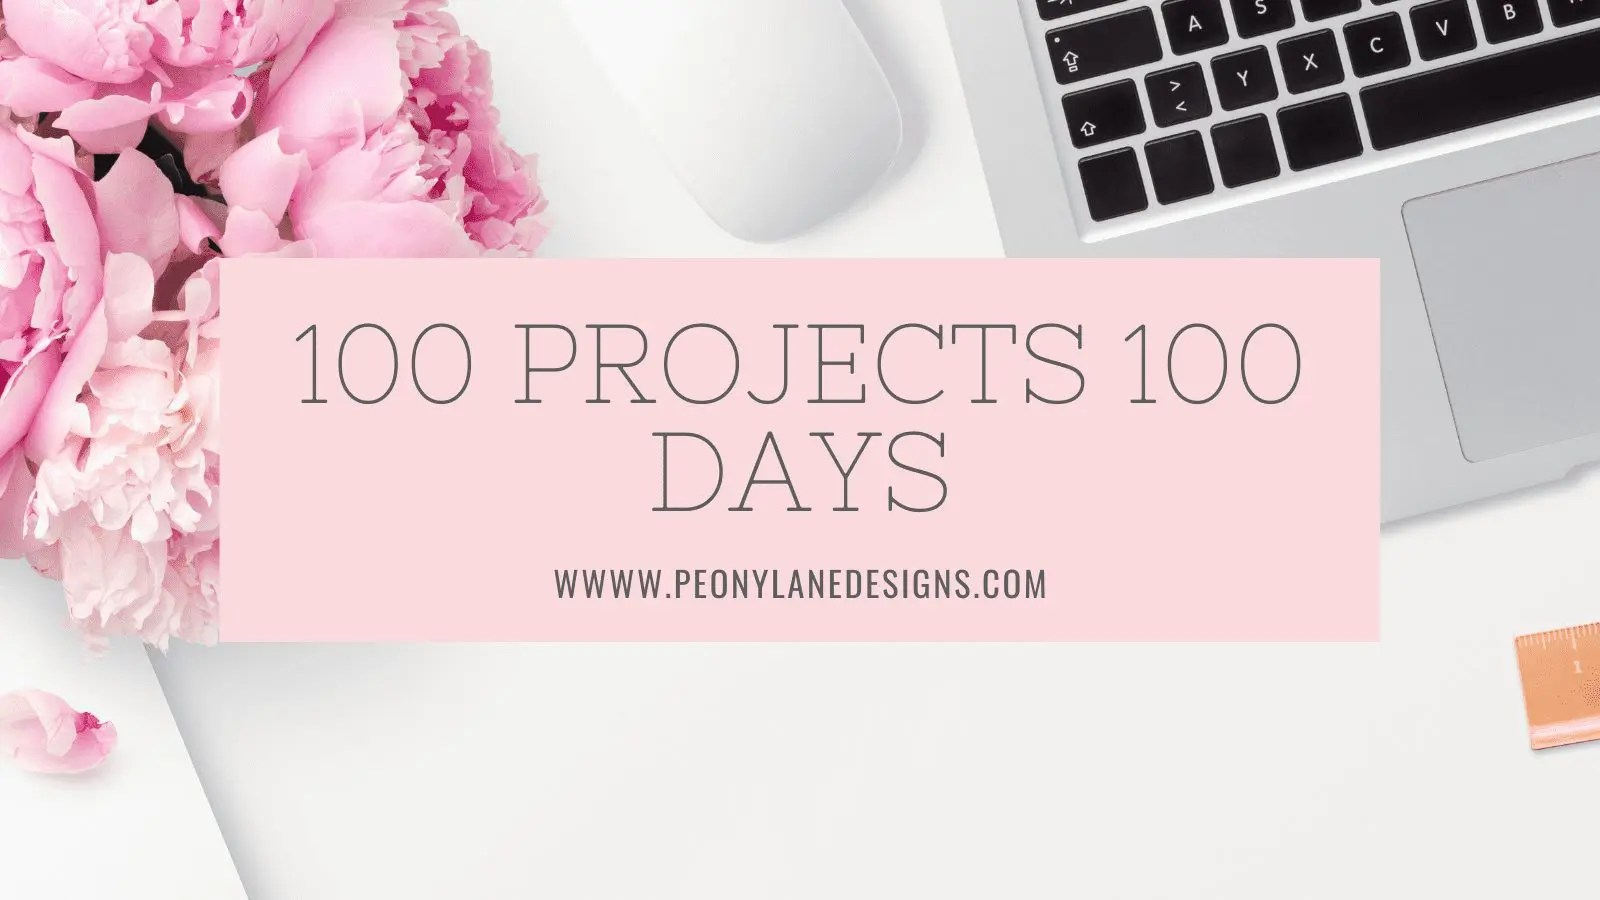 100 Projects 100 Days Has Begun